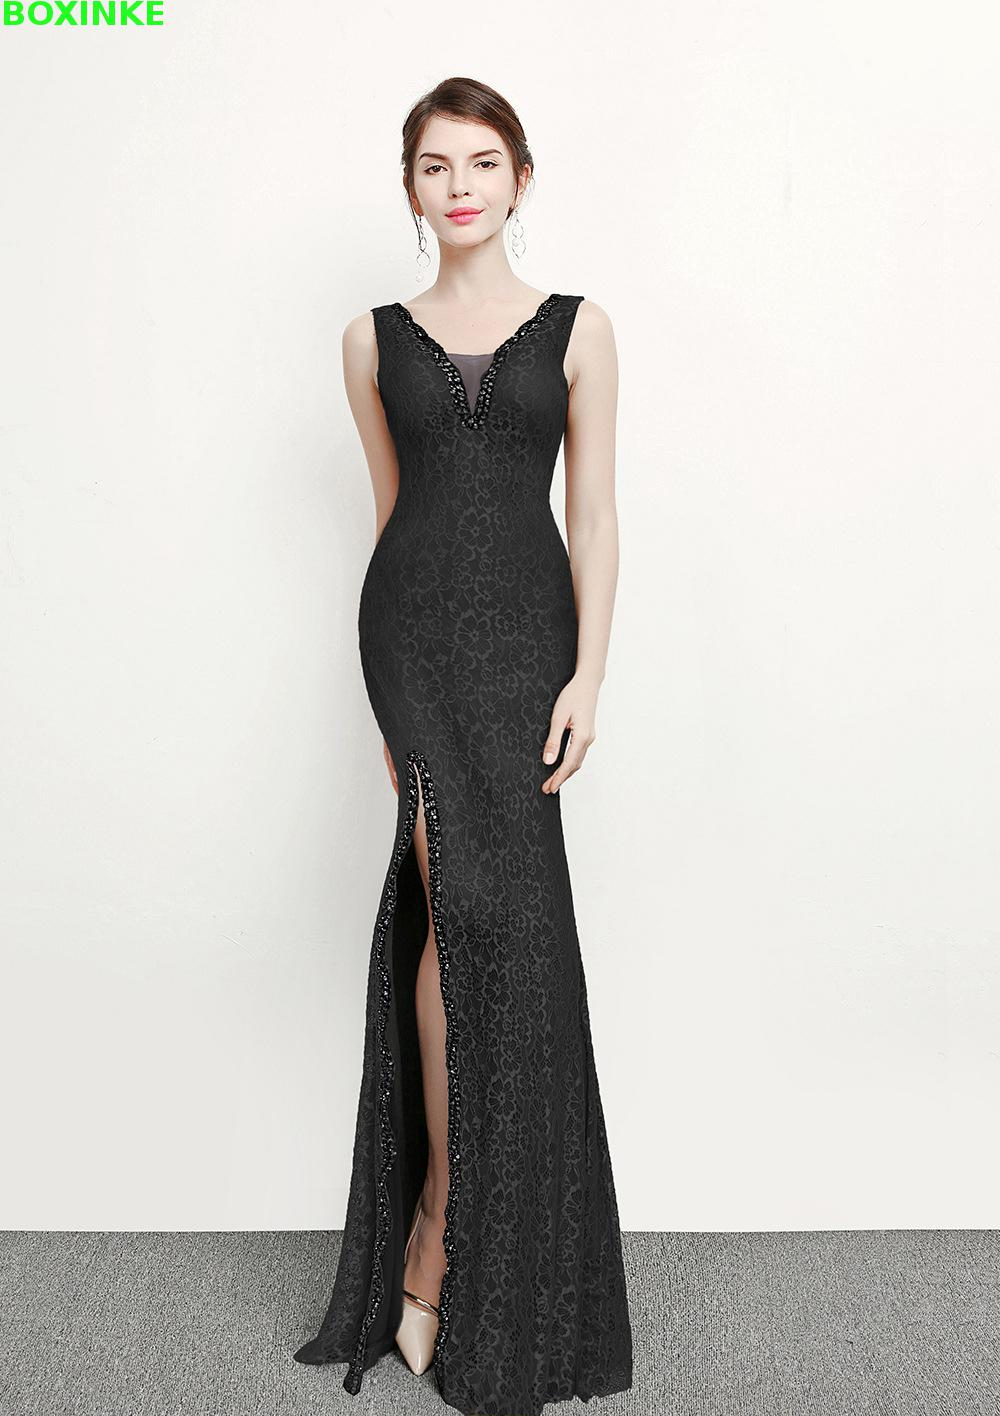 Limited Solid Vestidos Mujer Plus Size Zanzea New Summer Style Dressing Long Dress Wine Club Sexy Lace Fishtail Dress in Dresses from Women 39 s Clothing